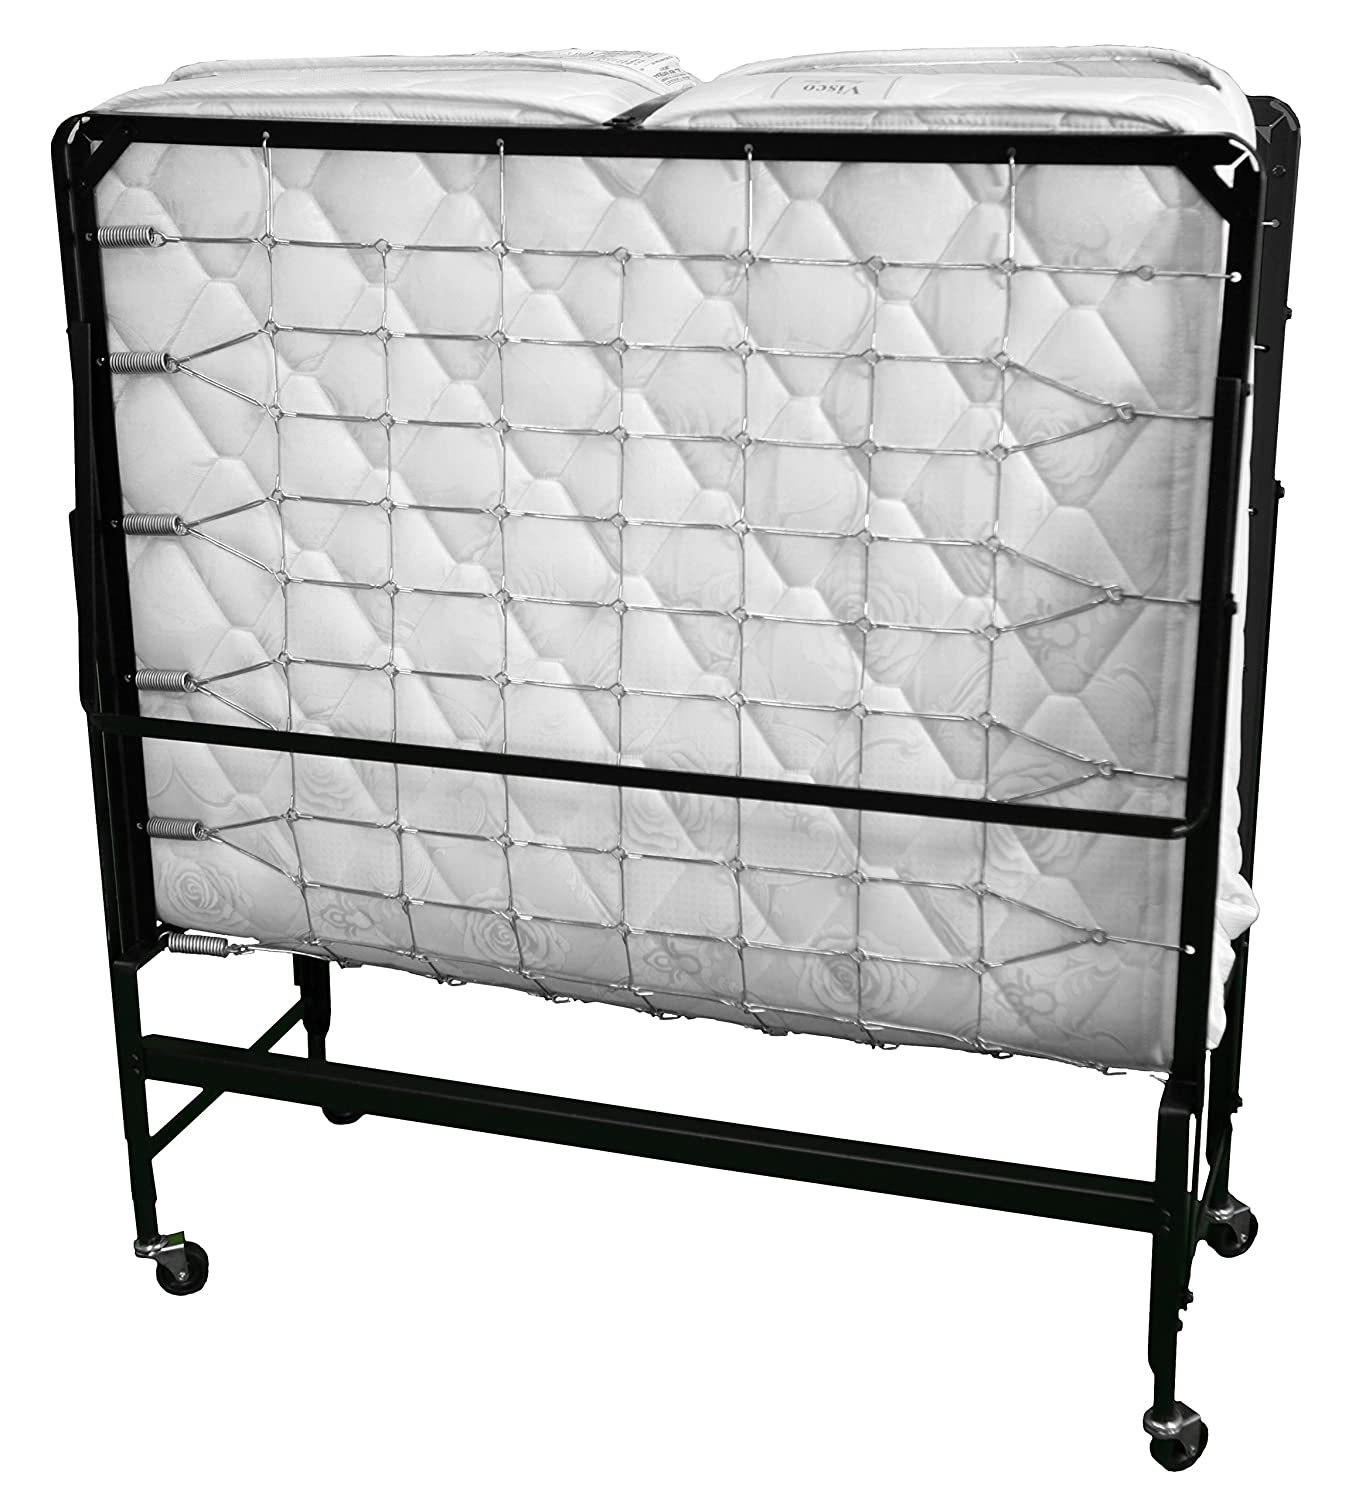 Hollywood Bed Frames Hollywood Bed Rollaway with Memory Foam Mattress, Twin Inc 950 39 MEM-I